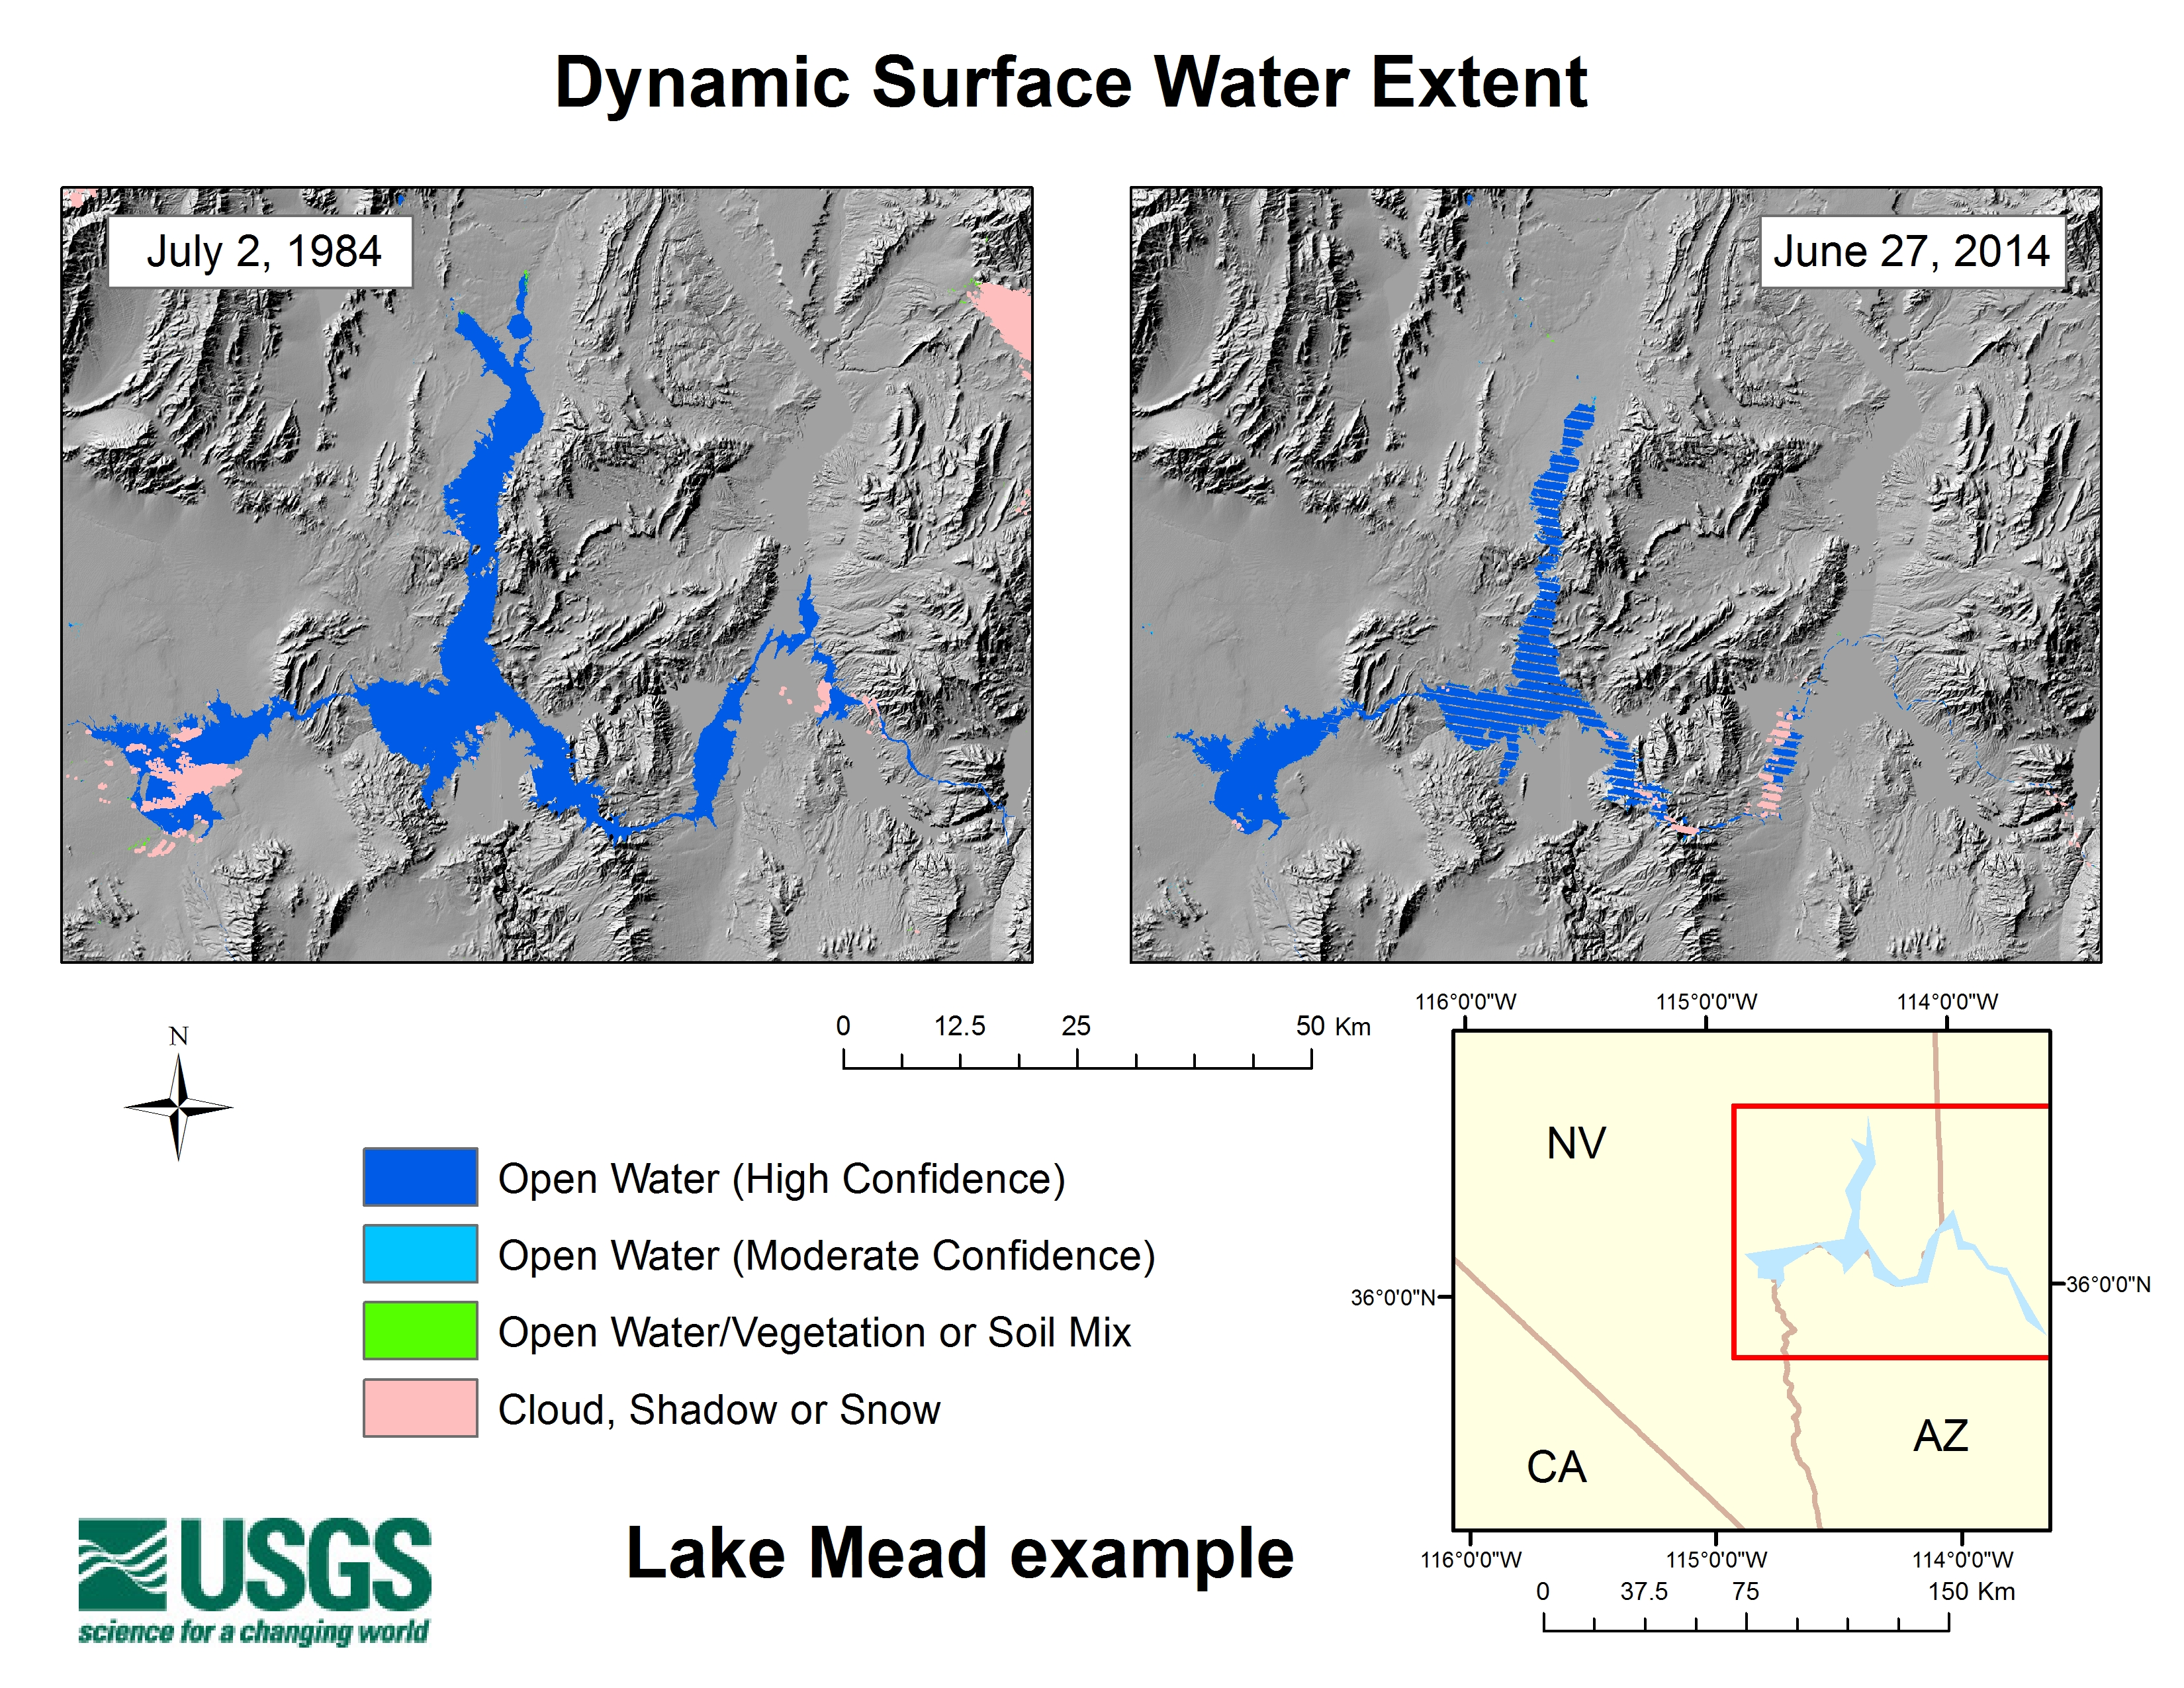 Lake Mead Dynamic Surface Water Extent data derived from Landsat 5 (Left) and Landsat 7 (right) summer images captured nearly 30 years apart. Significant differences in Lake Mead aerial extent caused by variations in climate and water demand are obvious. Such lengthy records of surface water variations are useful for science, resource management, and education. Note: Cross hatches visible in the right image are missing data due to The Landsat 7 scan line corrector failure.